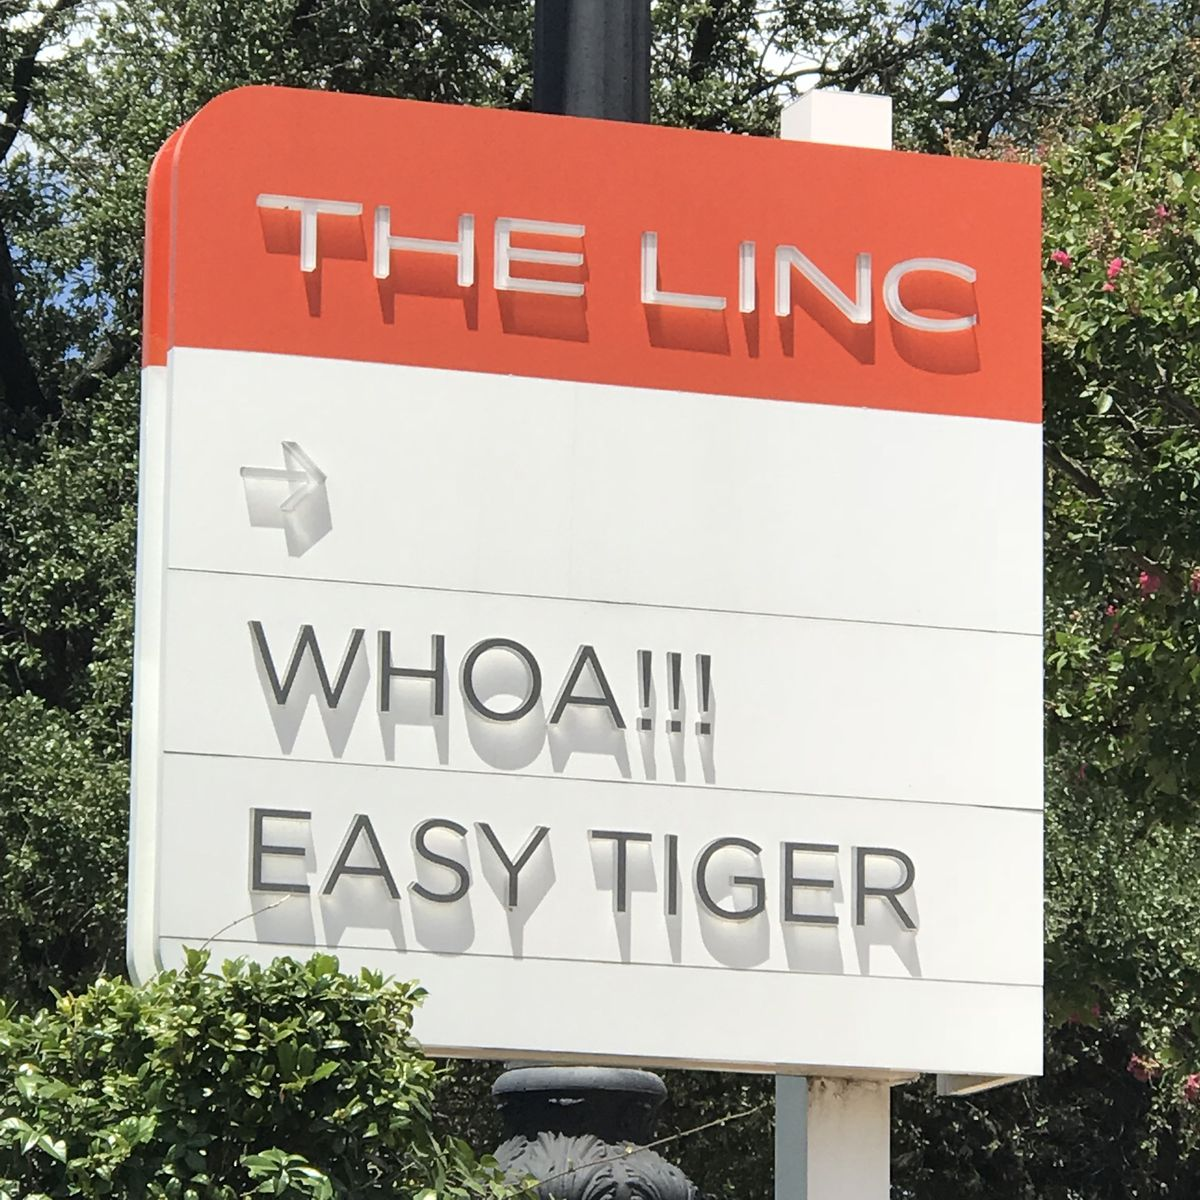 Easy Tiger's signage at the Linc